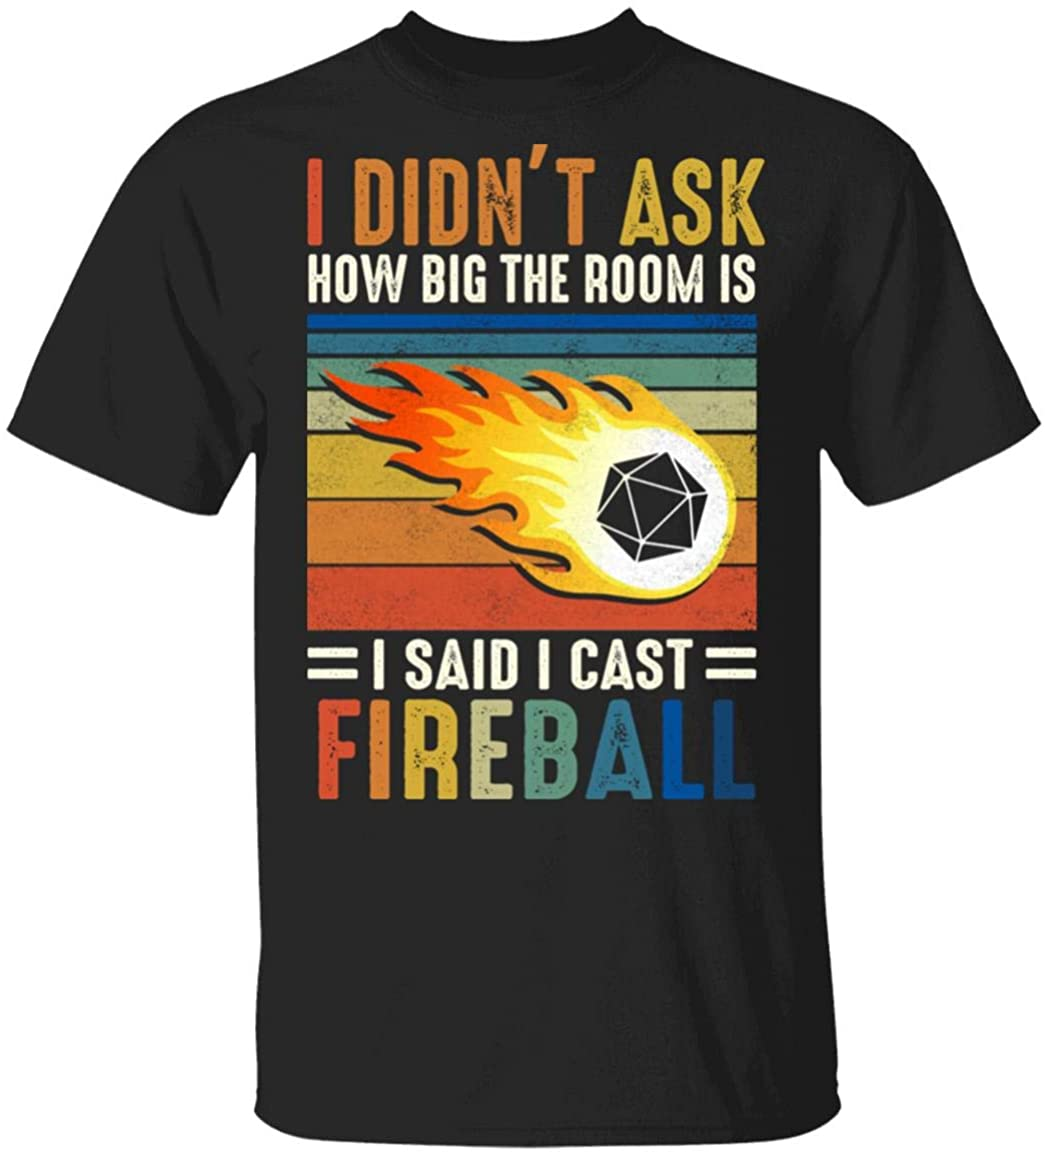 i Didnt Ask How Big The Room is i Said i cast Fireball Vintage t-Shirt